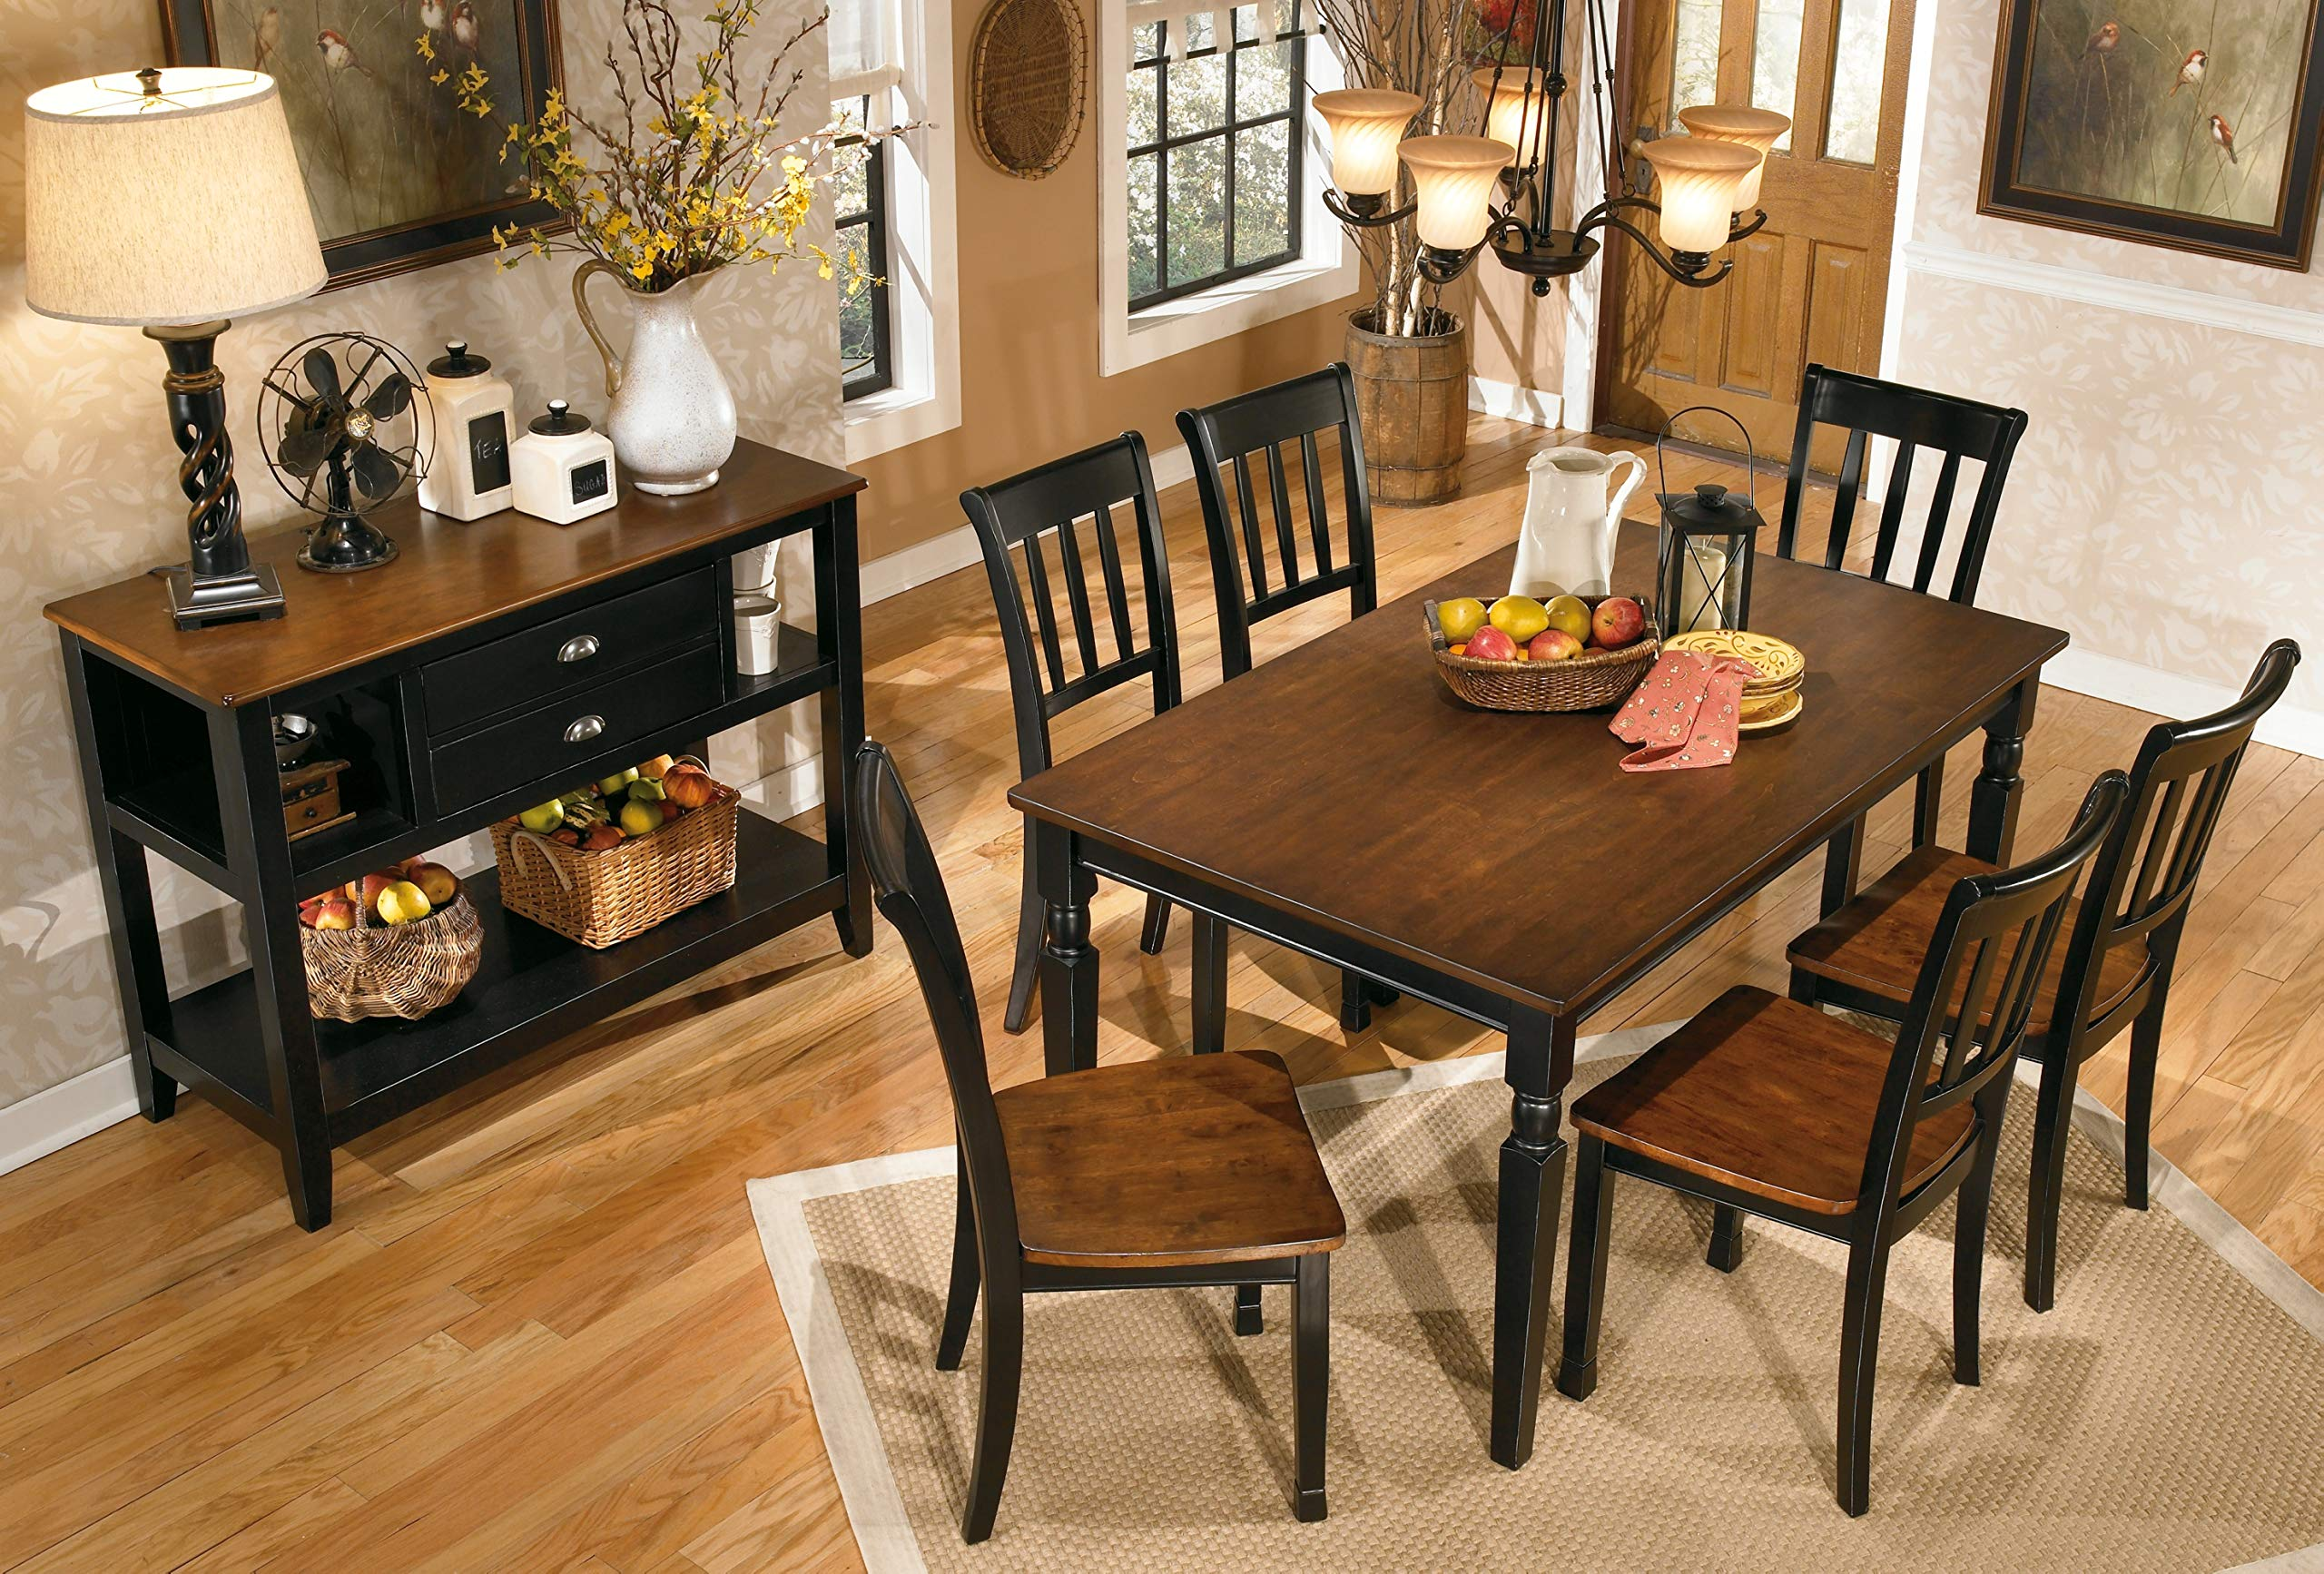 Ashley Furniture Signature Design - Owingsville Dining Room Side Chair - Latter Back - Set of 2 - Black-Brown by Signature Design by Ashley (Image #7)